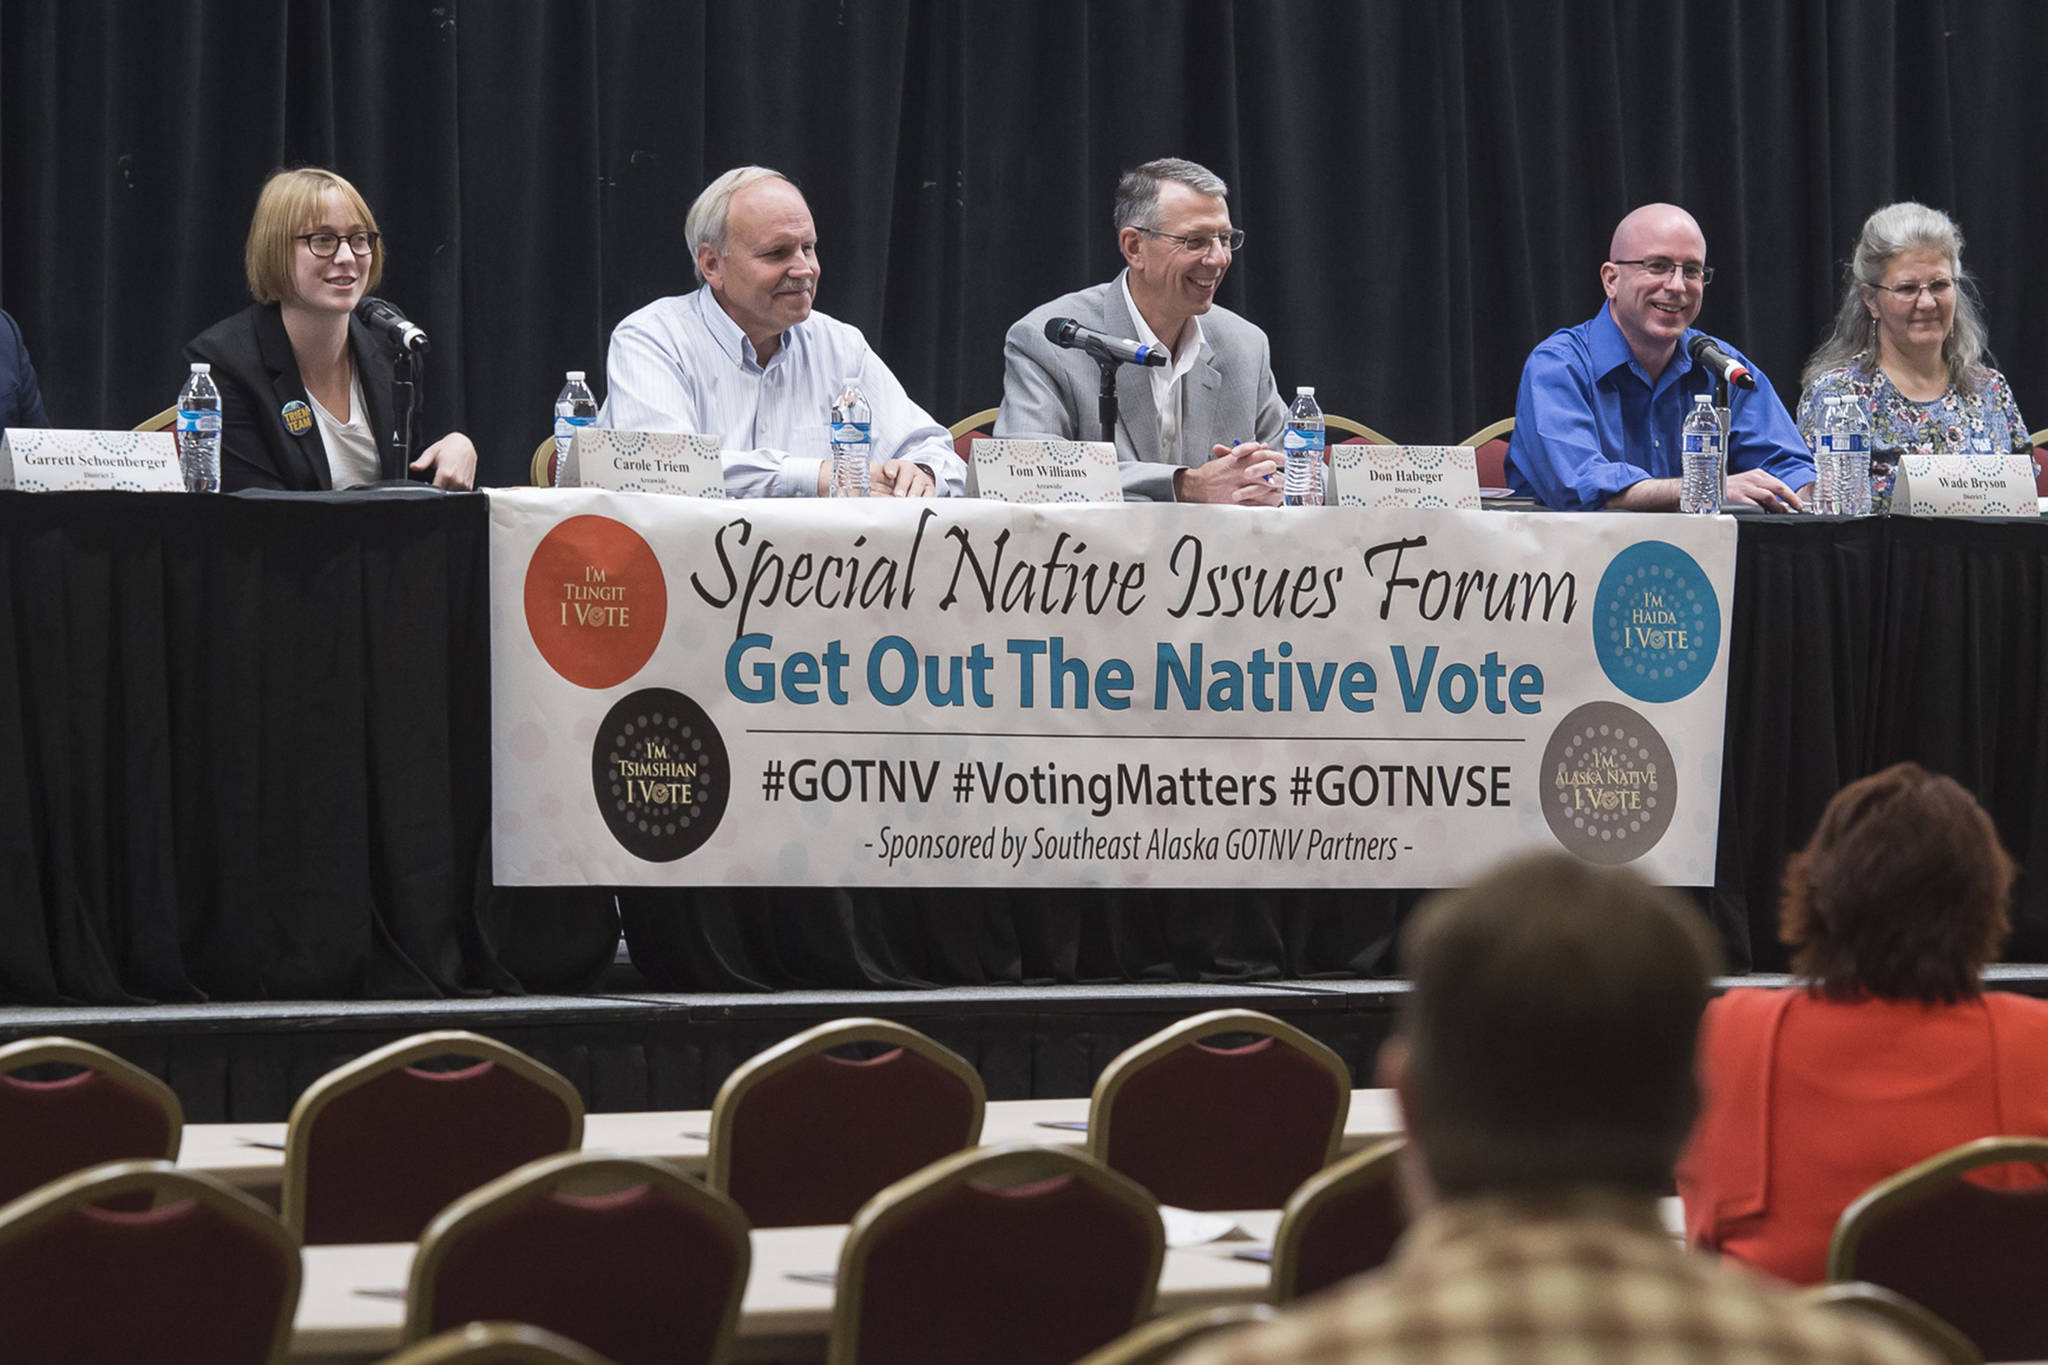 Assembly candidates answers questions during a Special Native Issues Forum at the Elizabeth Peratrovich Hall on Tuesday, Sept. 18, 2018. From left: Garrett Schoenberger, Carole Triem, Tom Williams, Don Habeger, Wade Bryson, Michelle Bonnet Hale and Loren Jones. (Michael Penn | Juneau Empire)